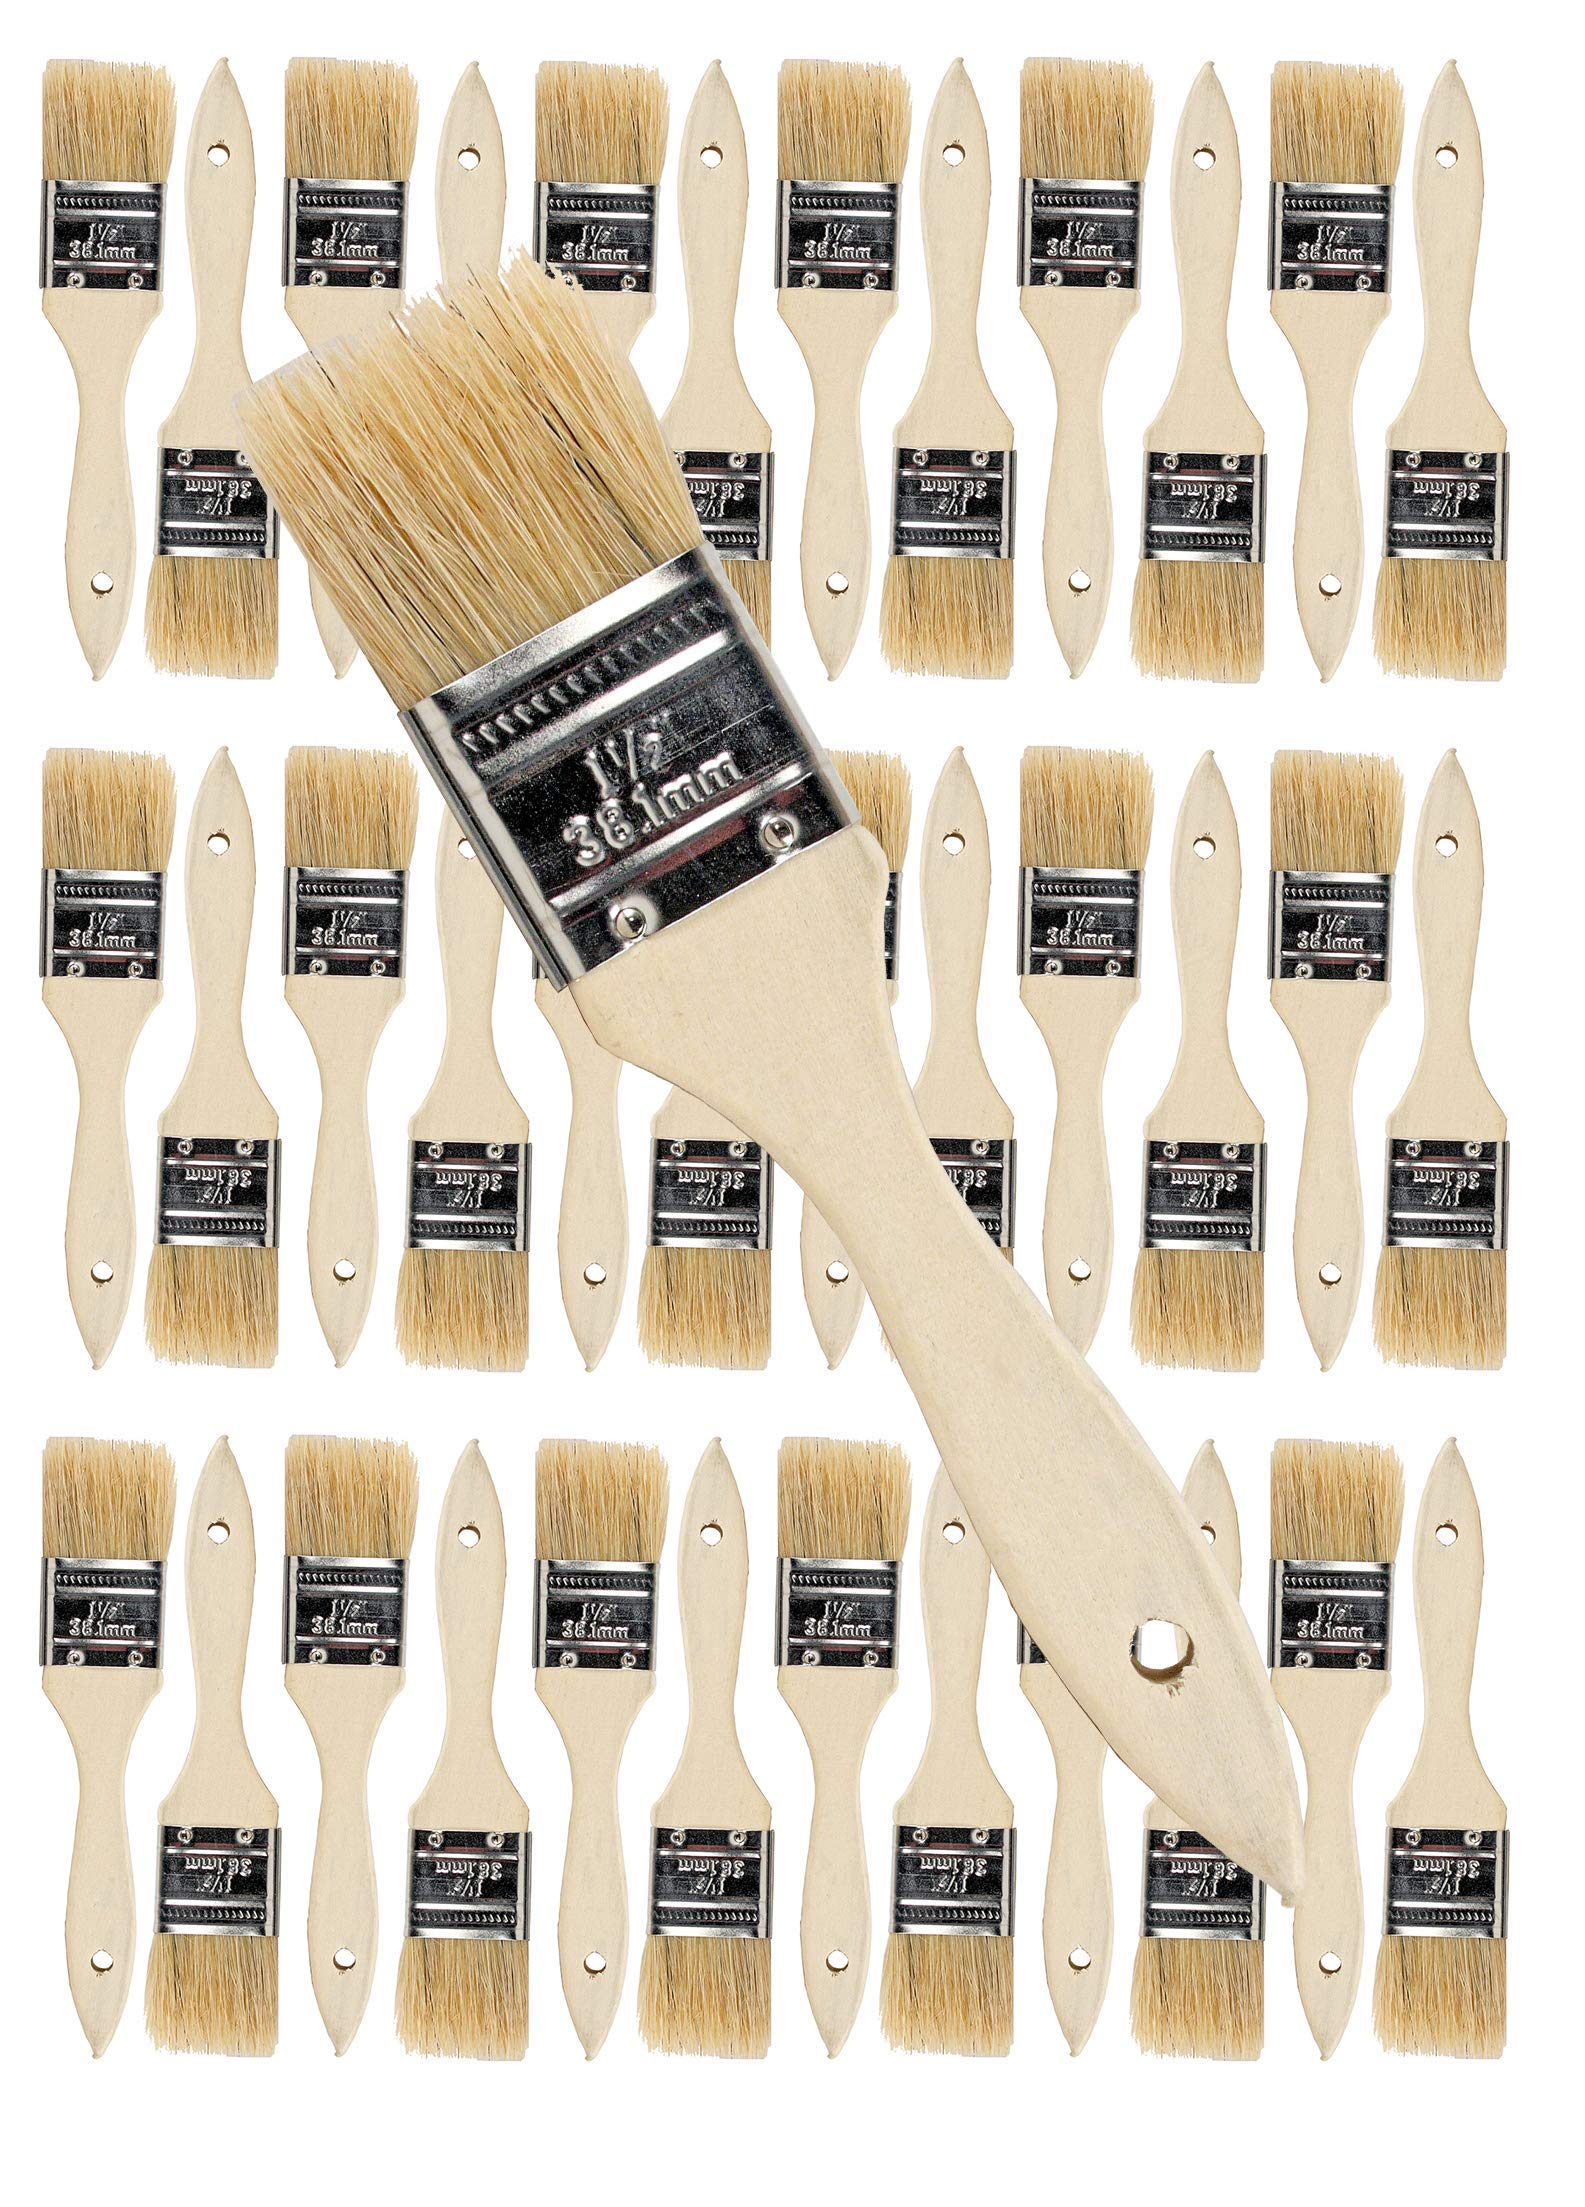 36PK 1.5 inch Chip Paint Brushes for Paint, Stains,Varnishes,Glues, Gesso, Arts & Crafts. (1-1/2''-36ea)